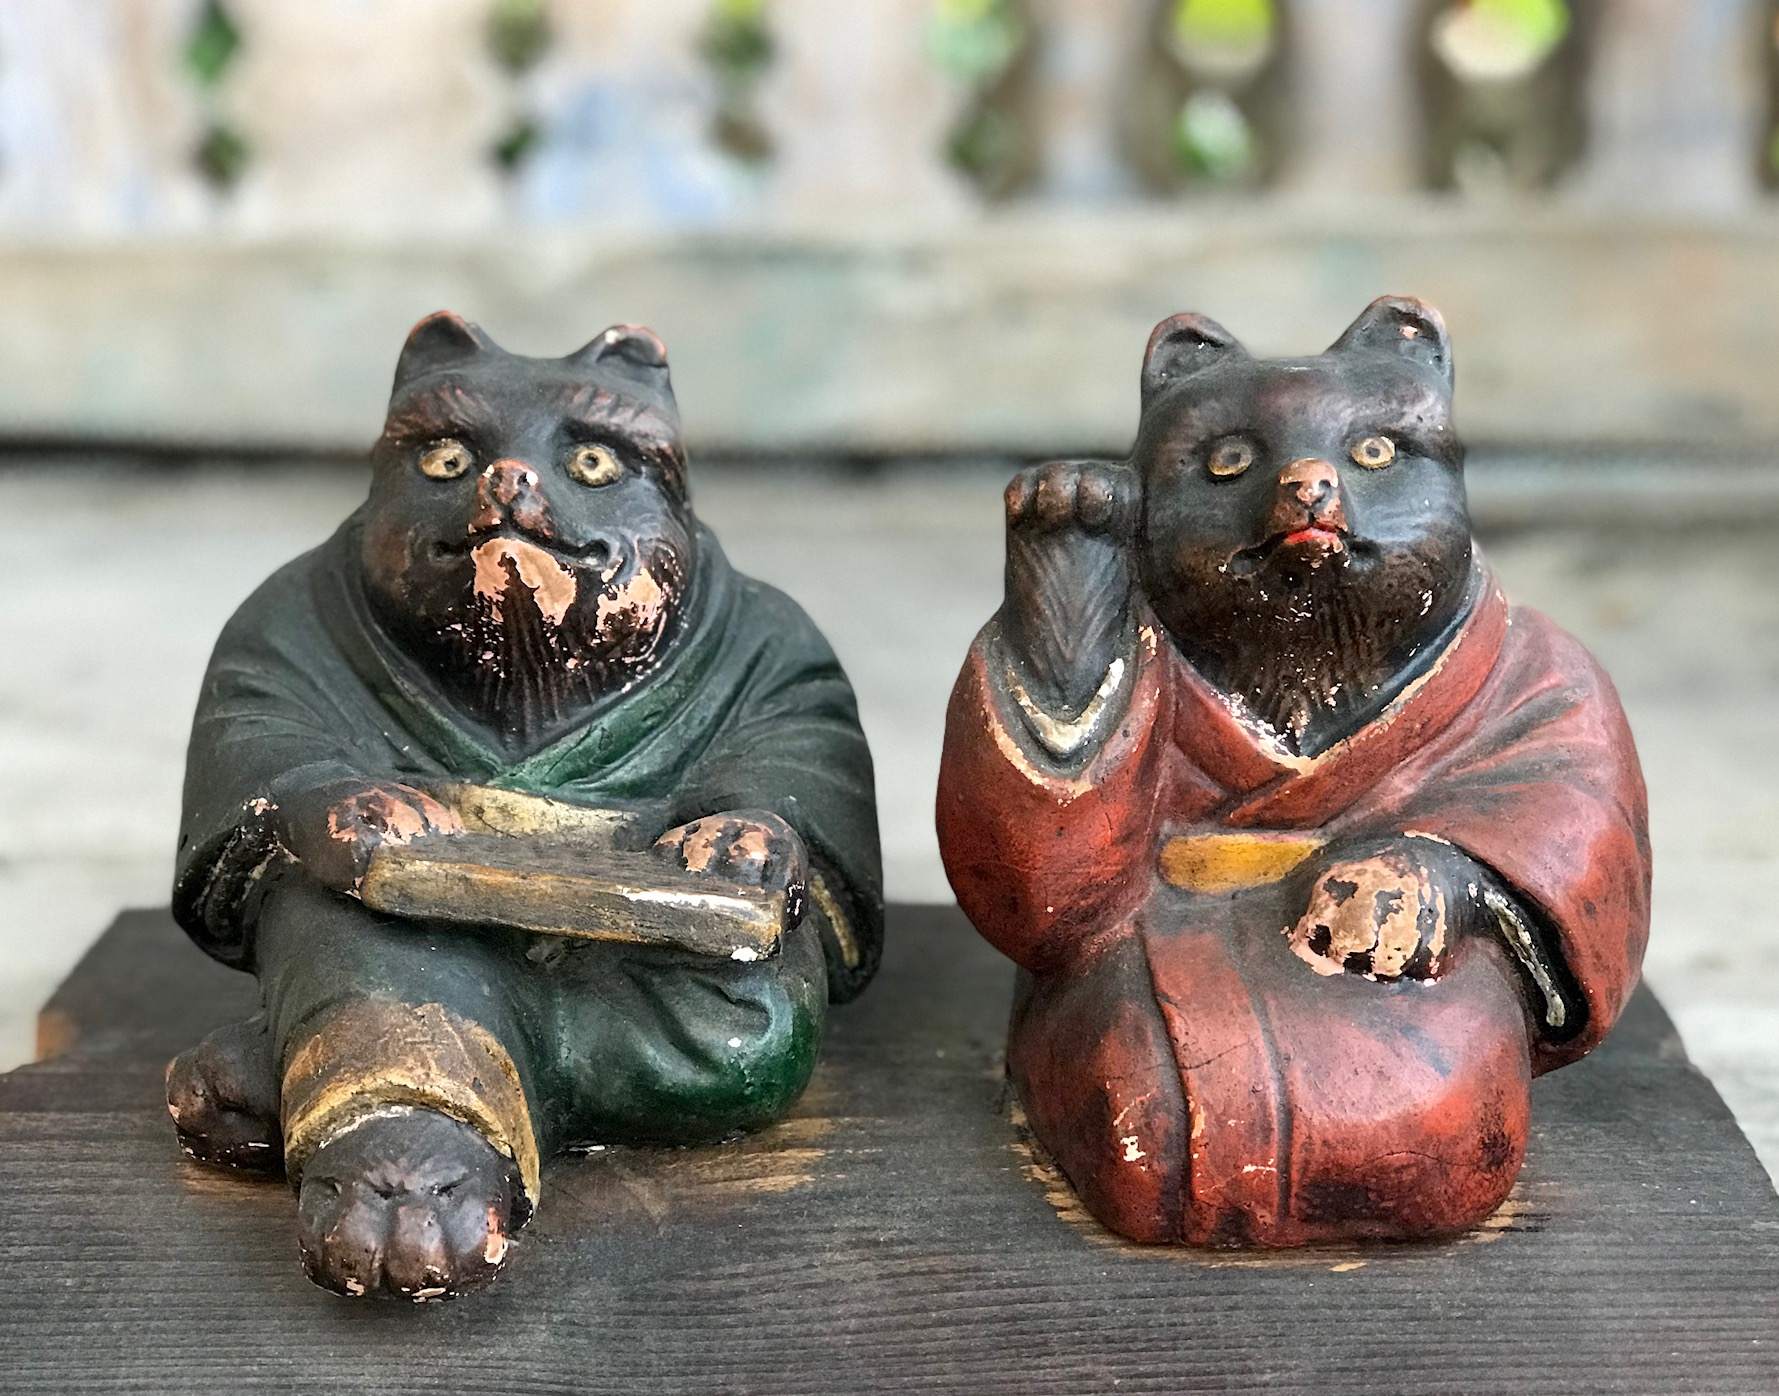 "2 Wooden Tanuki in kimonos with abacus, and calling for good luck, Tanuki have a very complex and interesting folkloric history. While largely unheard of in the states, Tanuki have been among the most significant characters in Japan since ancient times. Contemporary Tanuki are primarily a welcoming symbol of prosperity. In the mid 20th century the character was adapted, both visually and symbolically, to suit modern culture and, although they retain much of their prankster persona from the original 16th century creatures, they are much more benign. They have a long list of supernatural powers, most notable shape-shifting. Ancient Tanuki, humorously portrayed in block prints are now mostly found in museums and private collections. Tanuki statues are often found in restaurant or shop windows and outside temples. Famous for getting drunk and not paying their bills, they are usually portrayed wearing a straw hat and carrying a flask of sake and a ledger of promissory notes. Thus they can also serve as cautionary figures against the hazards of overindulging in alcohol. They always have big bellies and humorously large testicles which they use as drums. 5"" x 10 1/4"" x 7 1/2"", sold., thedavidalancollection.com , solana beach, ca"